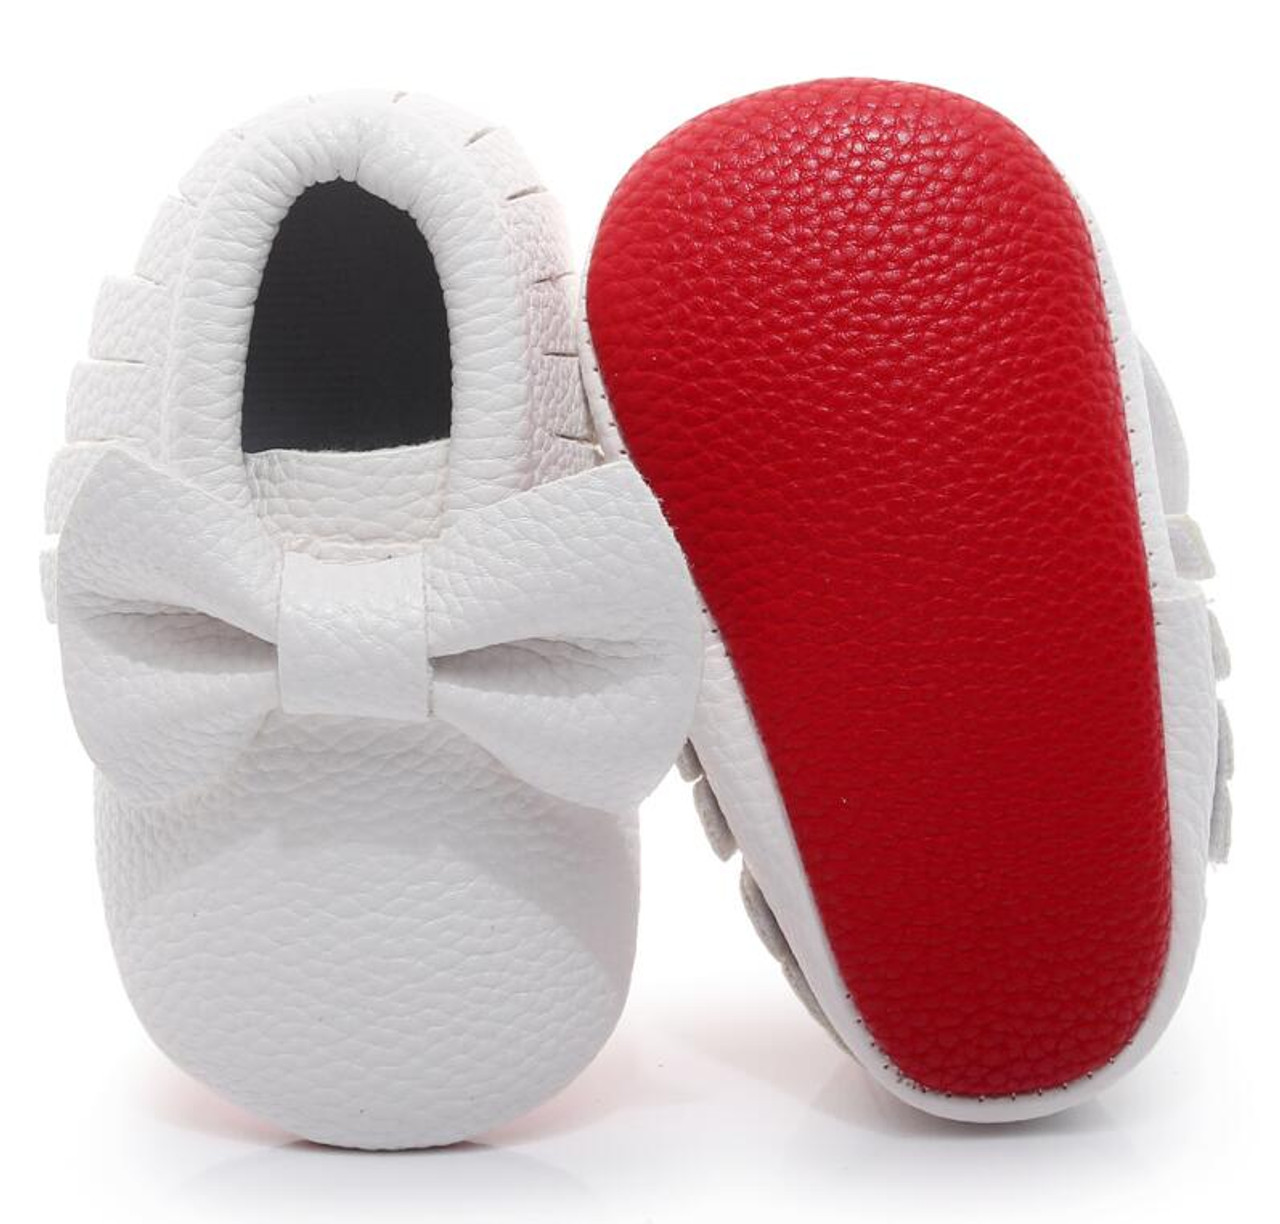 c83db252da97 ... New Red sole PU Leather Newborn Baby Boy Girl Baby Moccasins Soft Moccs Shoes  Bebe Fringe ...